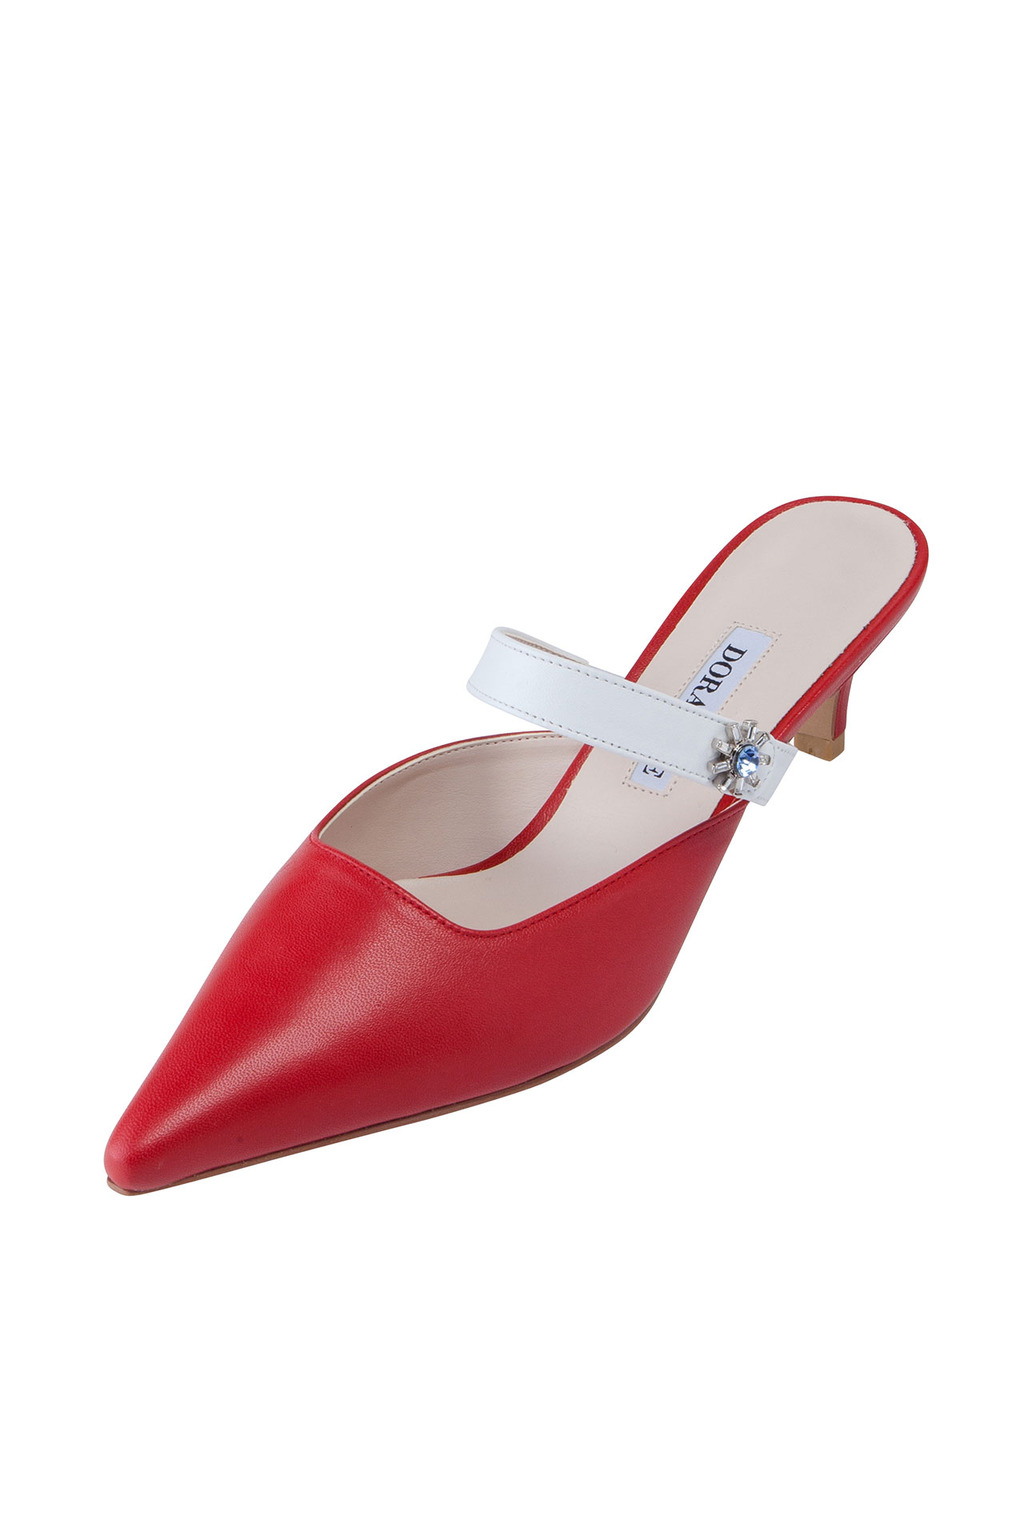 DORATORE Stella Red - Women's Shoes : South Korea